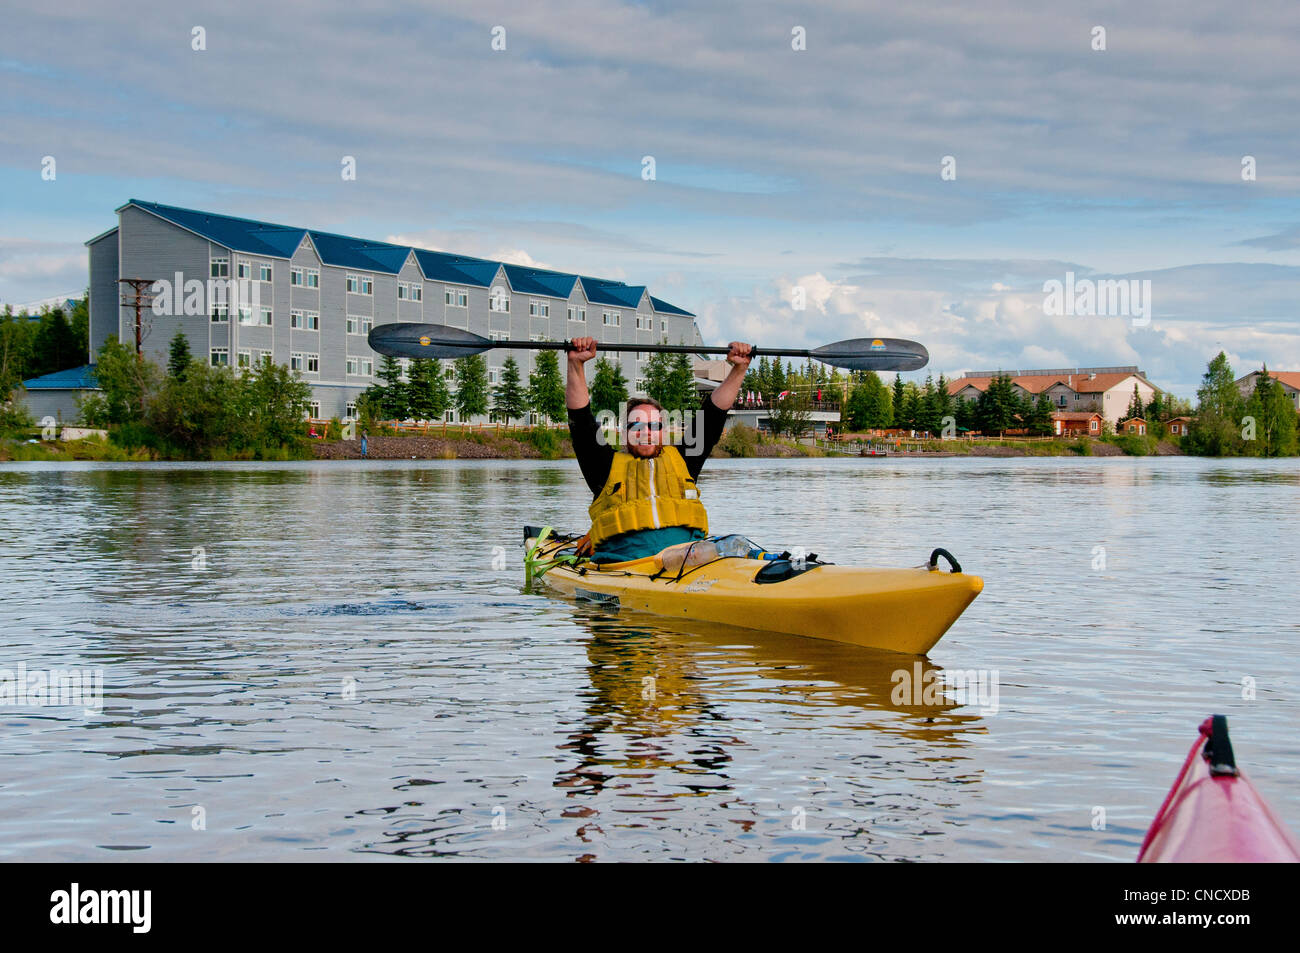 Man raises his arms in triumph after paddling the Chena River in Fairbanks,Interior Alaska, Summer - Stock Image